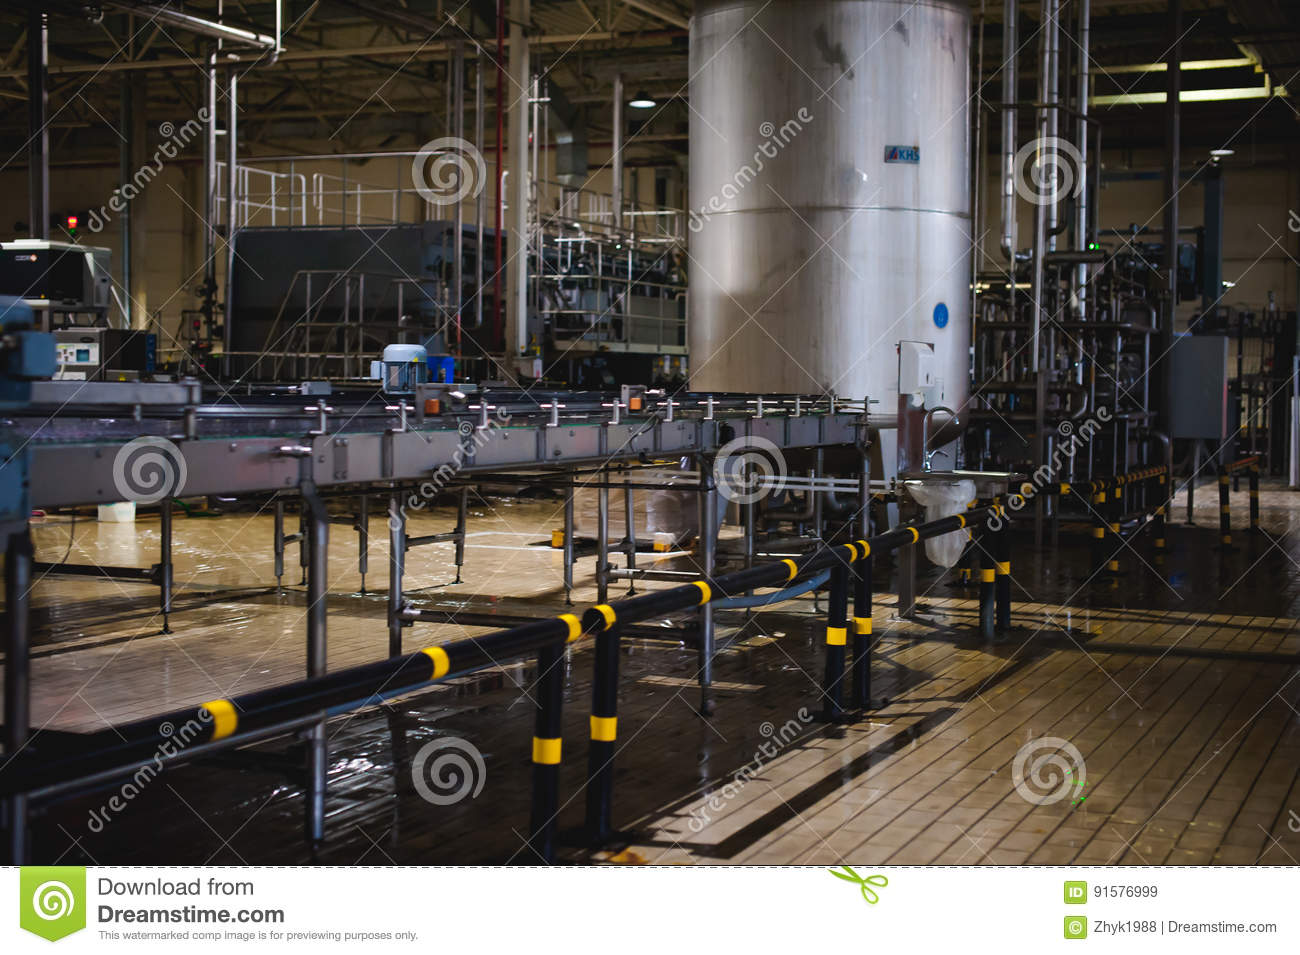 Beer manufacture line. Equipment for staged production bottling of Finished food products. Metal structures, pipes and tanks at en